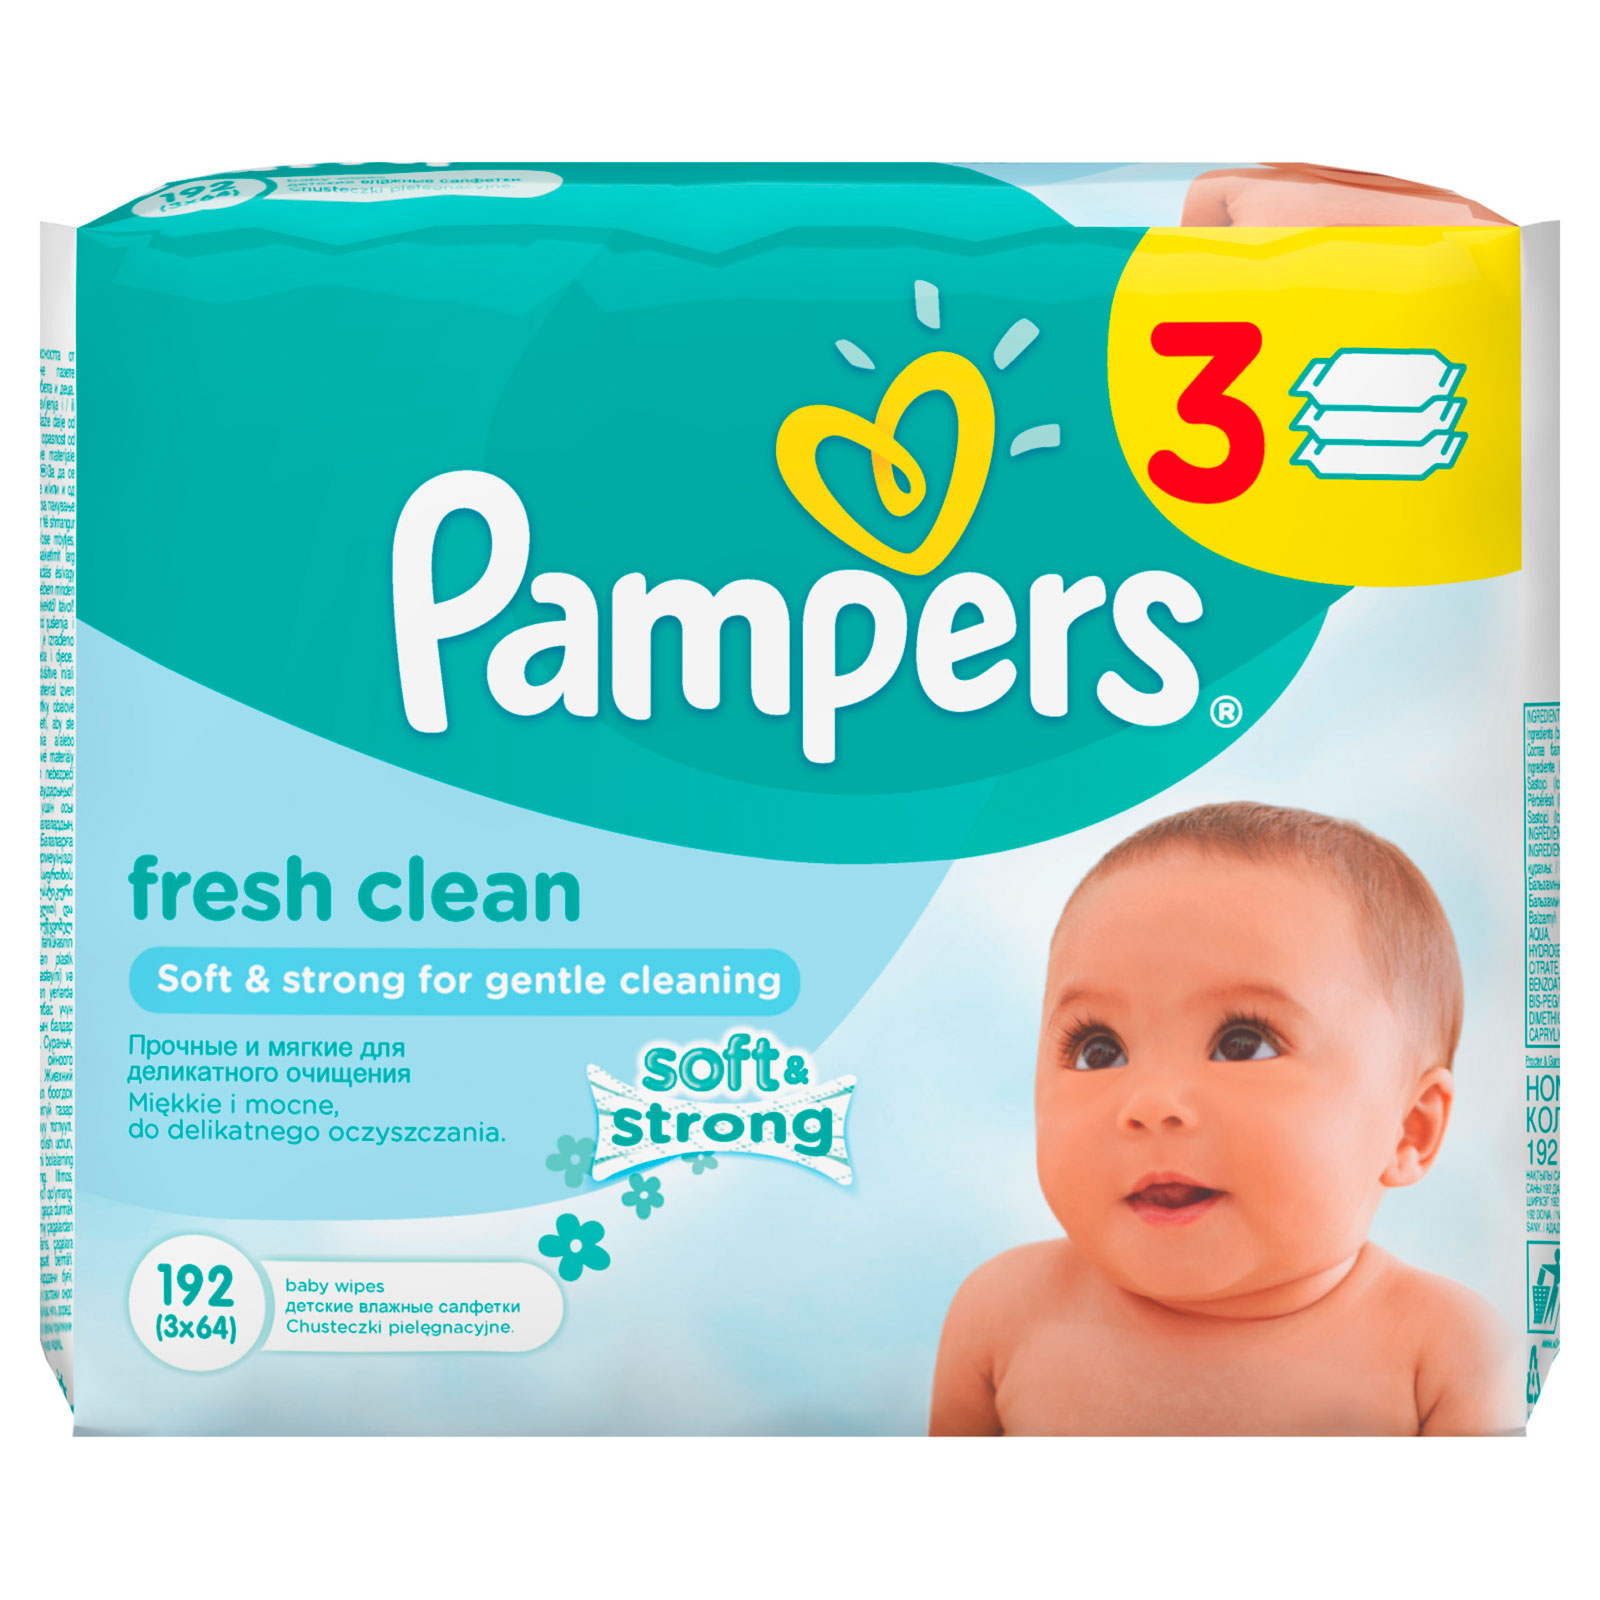 Салфетки влажные Pampers Baby Fresh Clean с алоэ (запасной блок 64 шт х 3) 192 шт от Младенец.ru